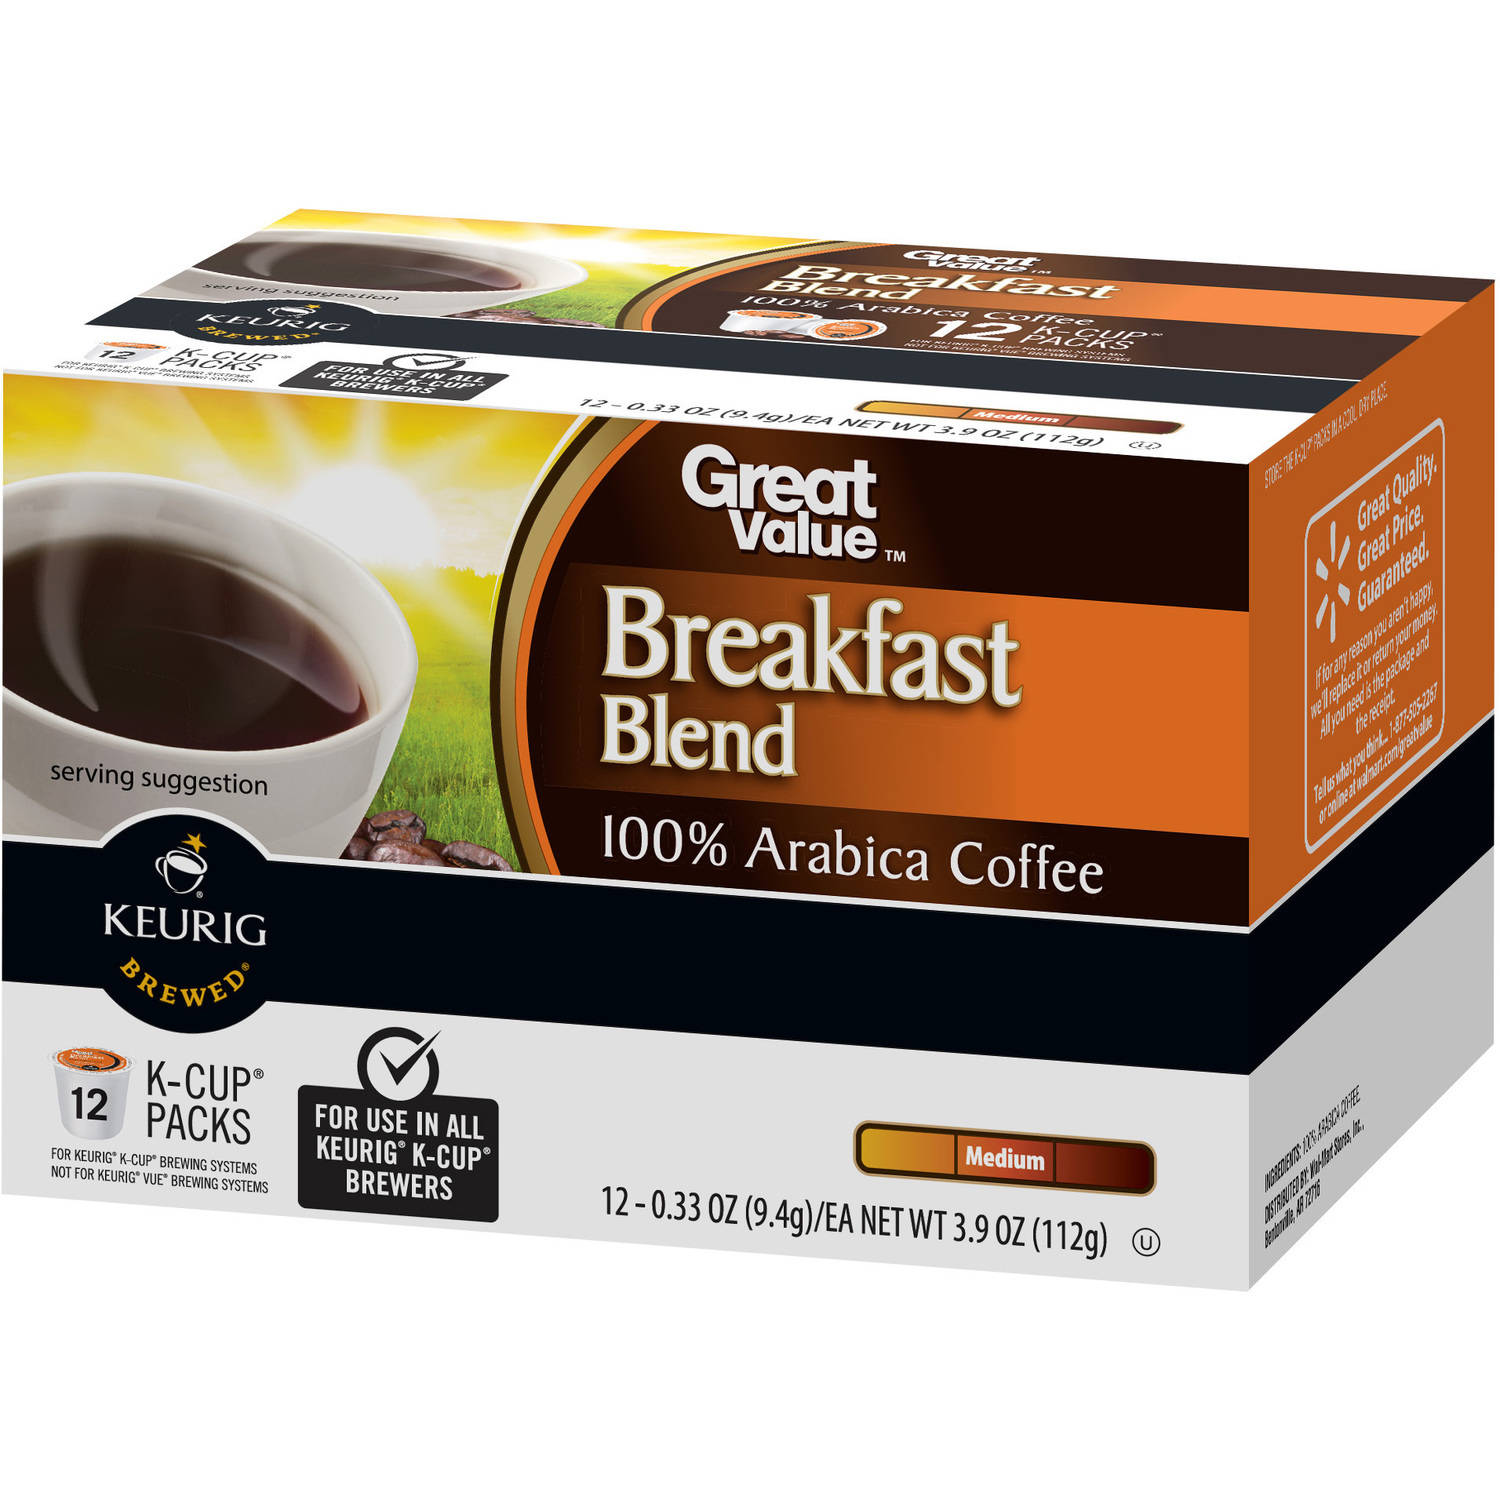 Great Value Breakfast Blend Medium Roast Coffee K-Cup Packs, 0.33 oz, 12 count